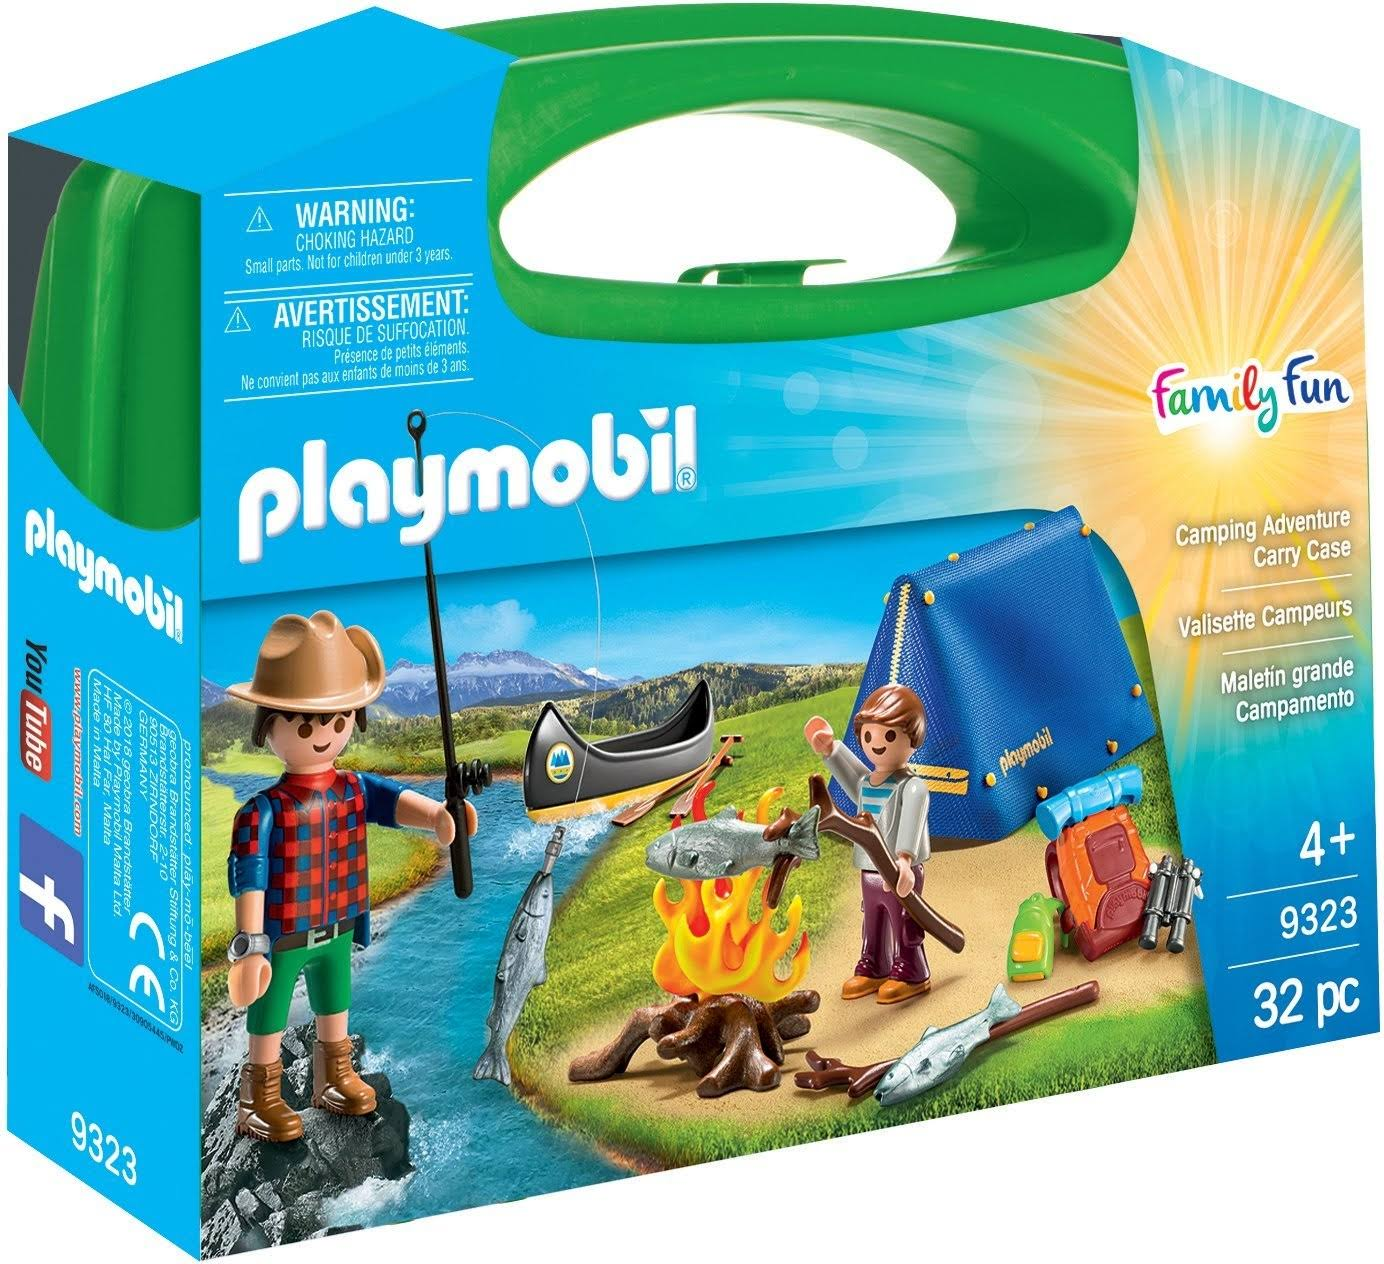 Playmobil 9323 Camping Adventure Carry Case Playset